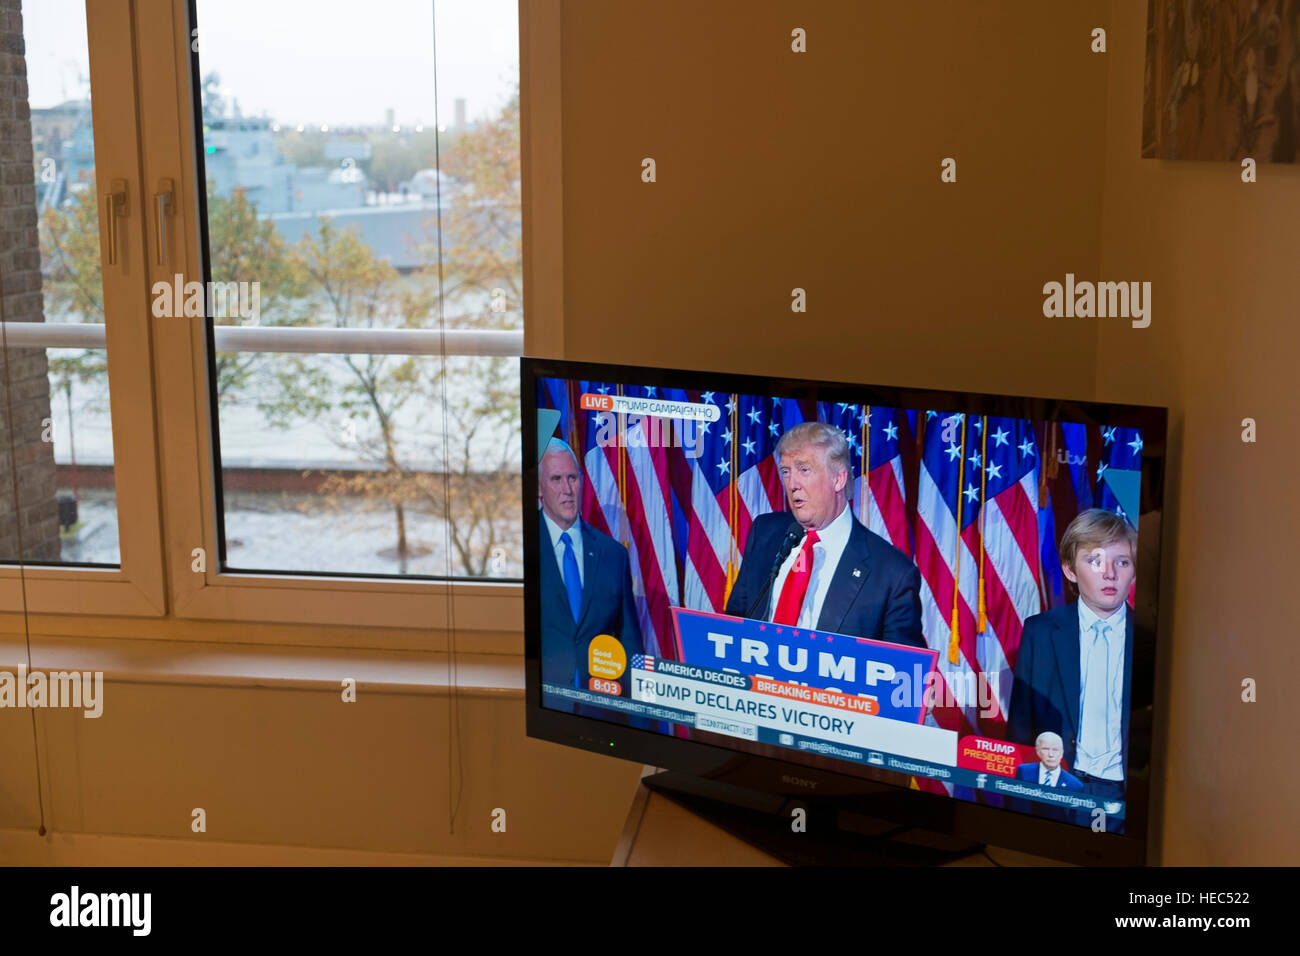 President Elect Donald Trump makes his acceptance speech on the morning after the US Presidential Elections in 2016, - Stock Image